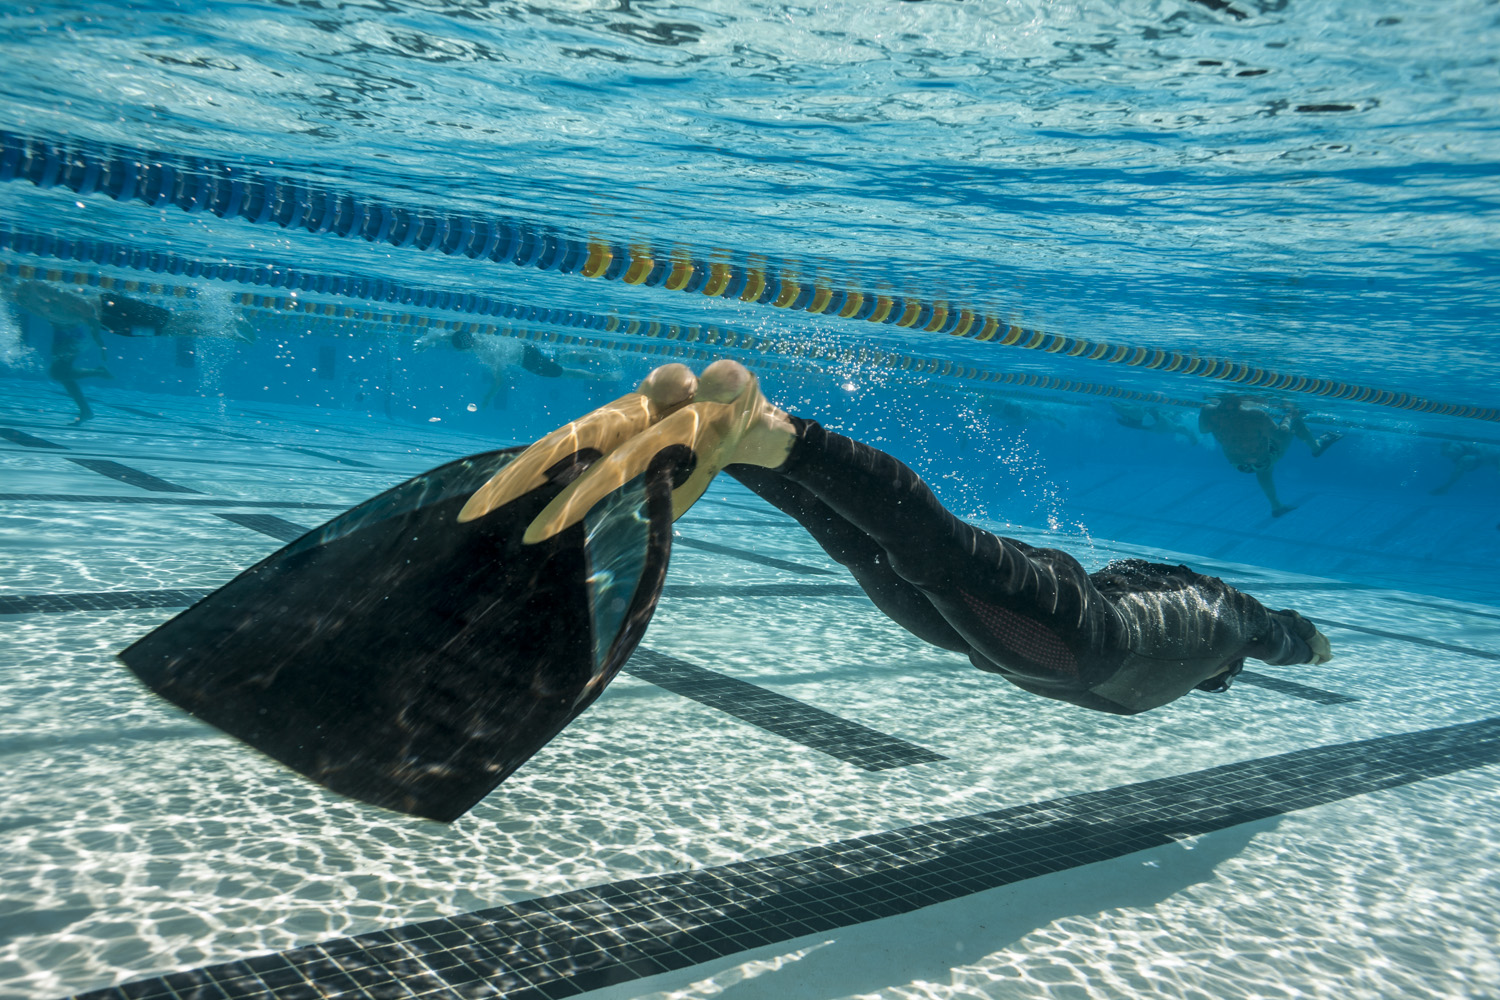 Freediver training with monofin.